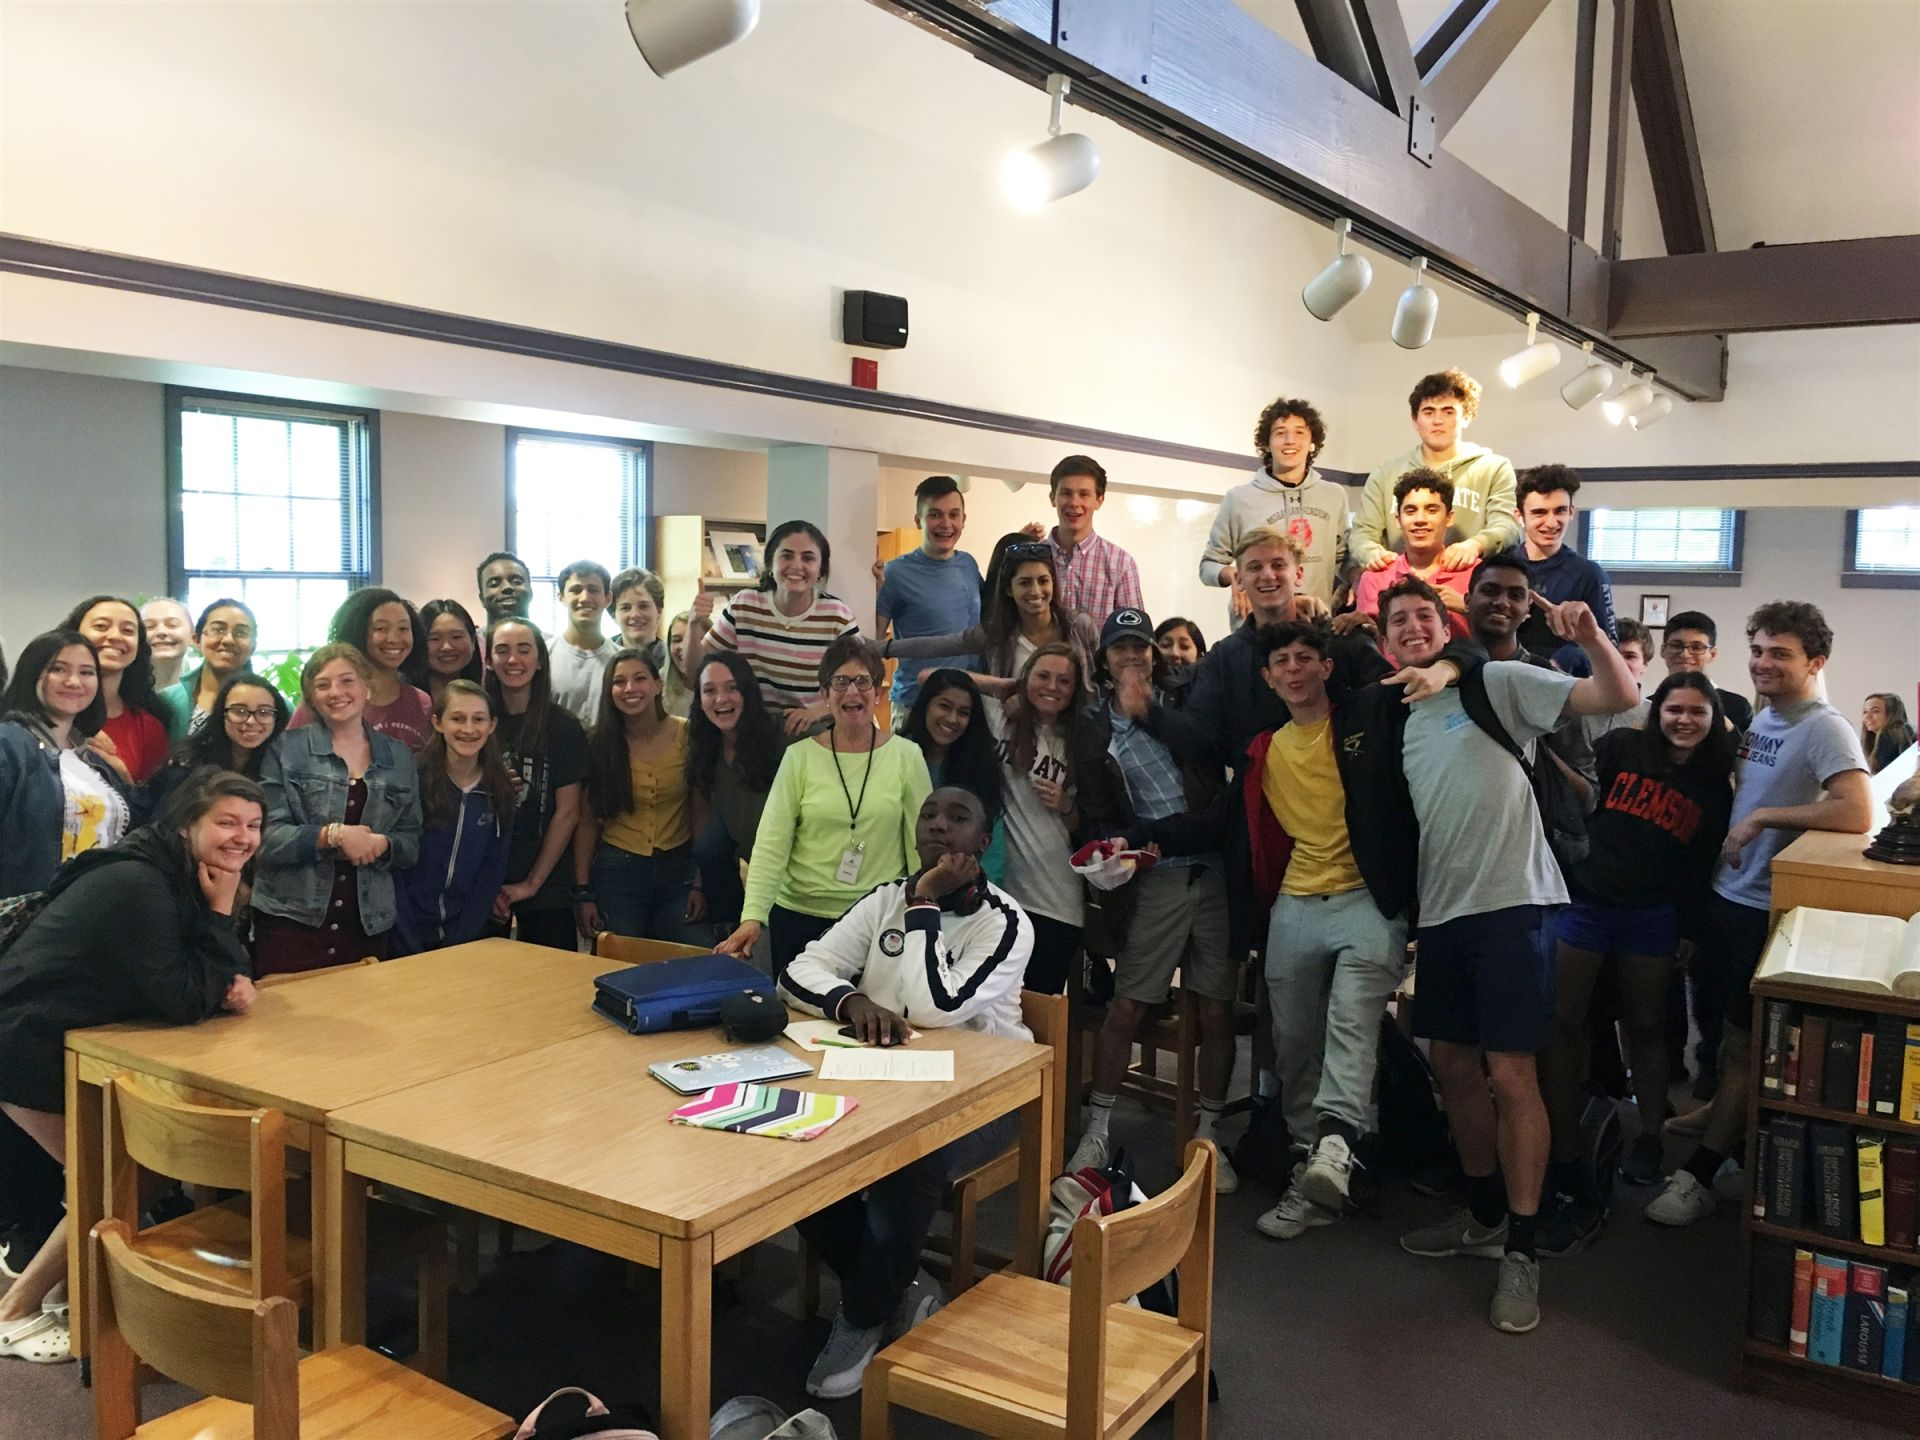 Greetings from students in our Upper School Library!